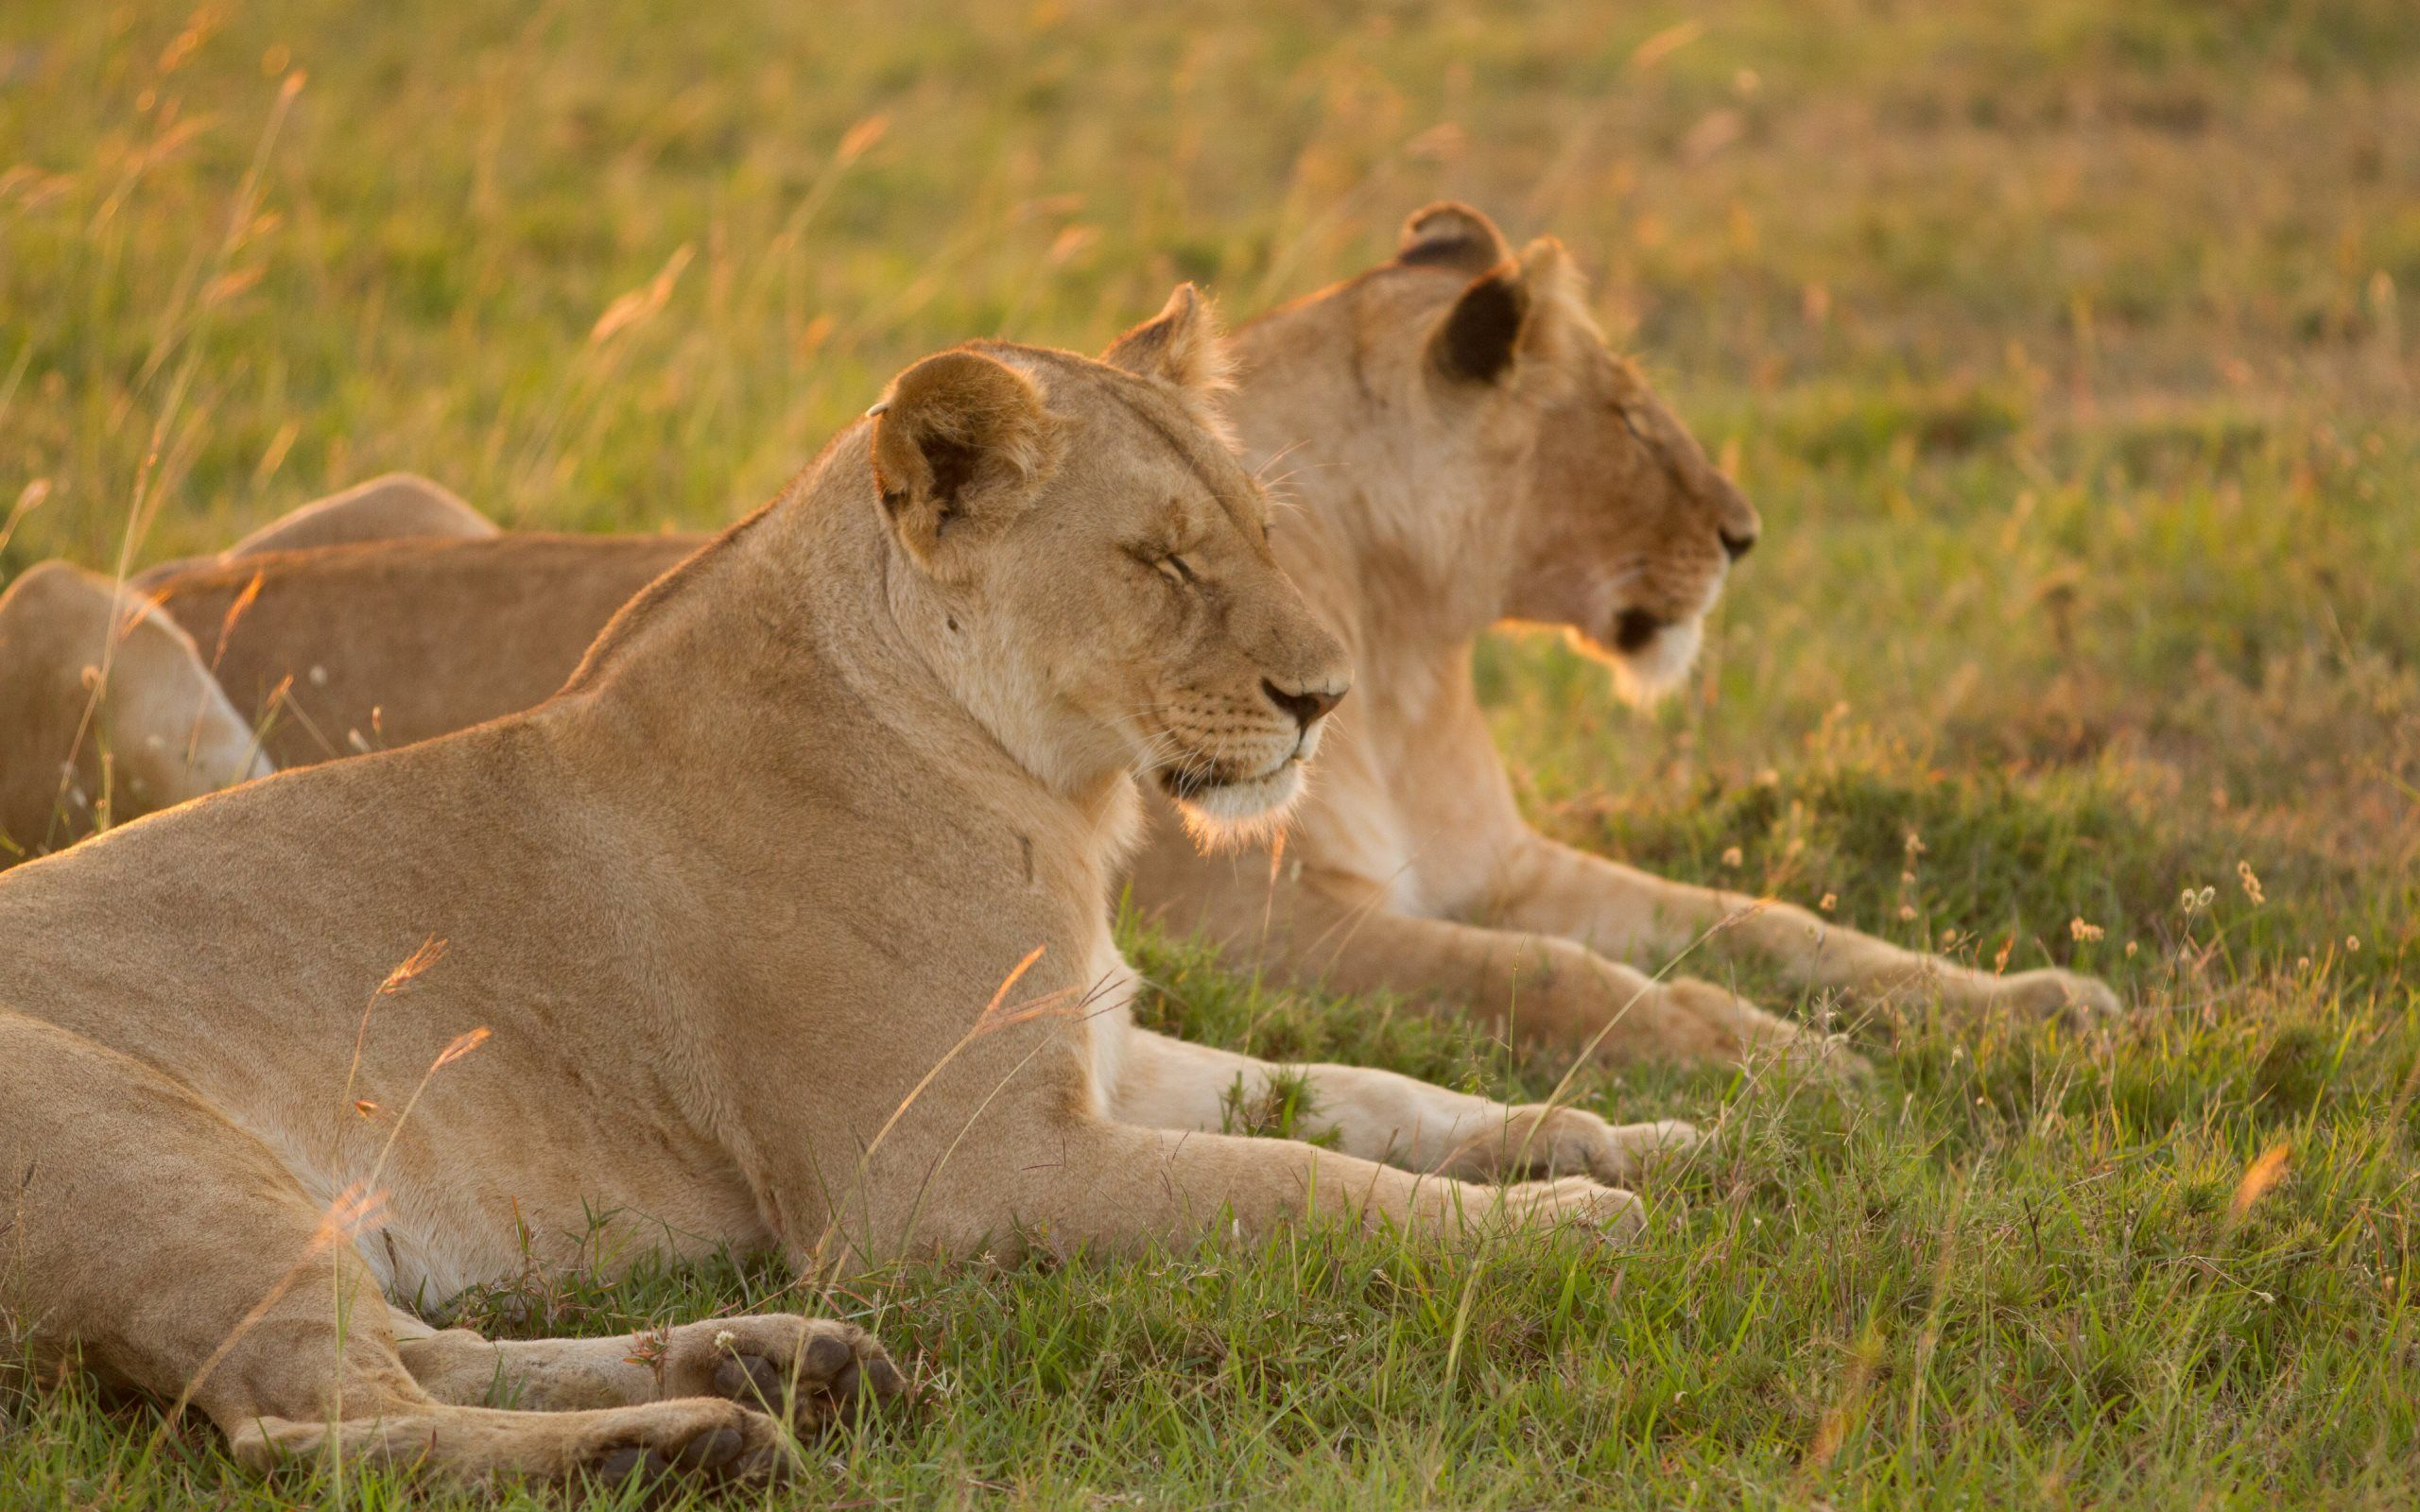 Lionesses From Masai Mara Animals Hd Wallpapers Hd Wallpaper